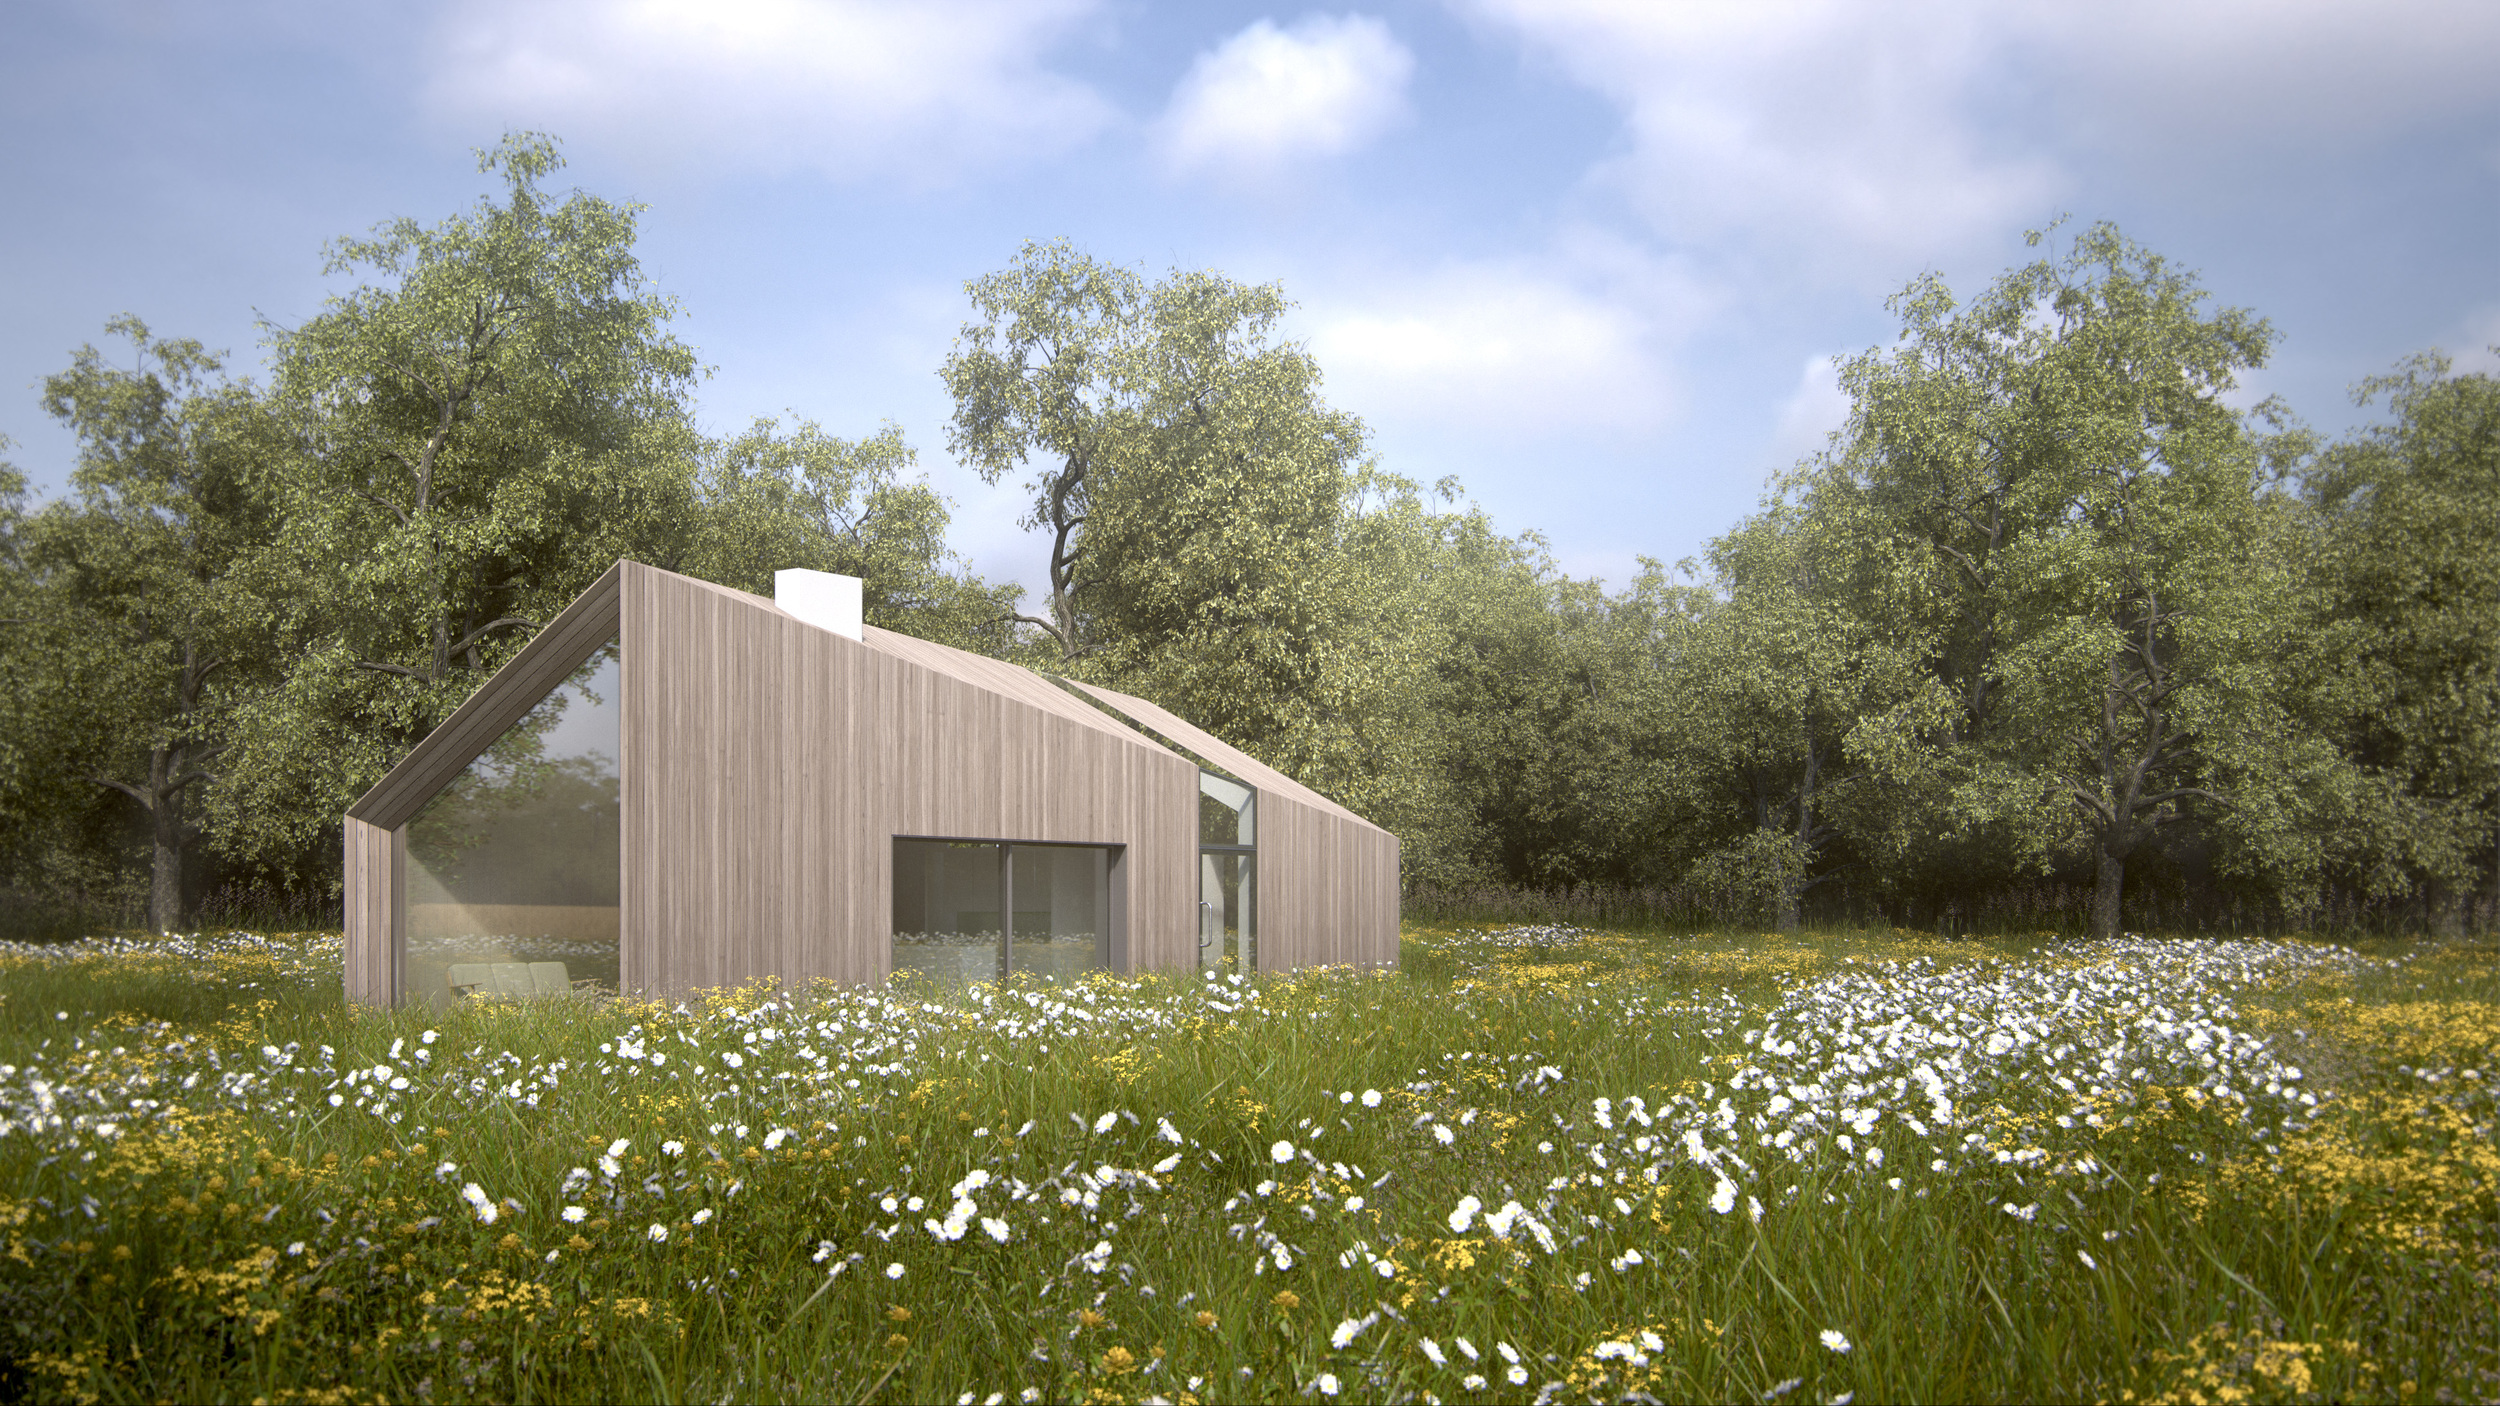 New Build Green Belt House - Wildflower Meadow 3